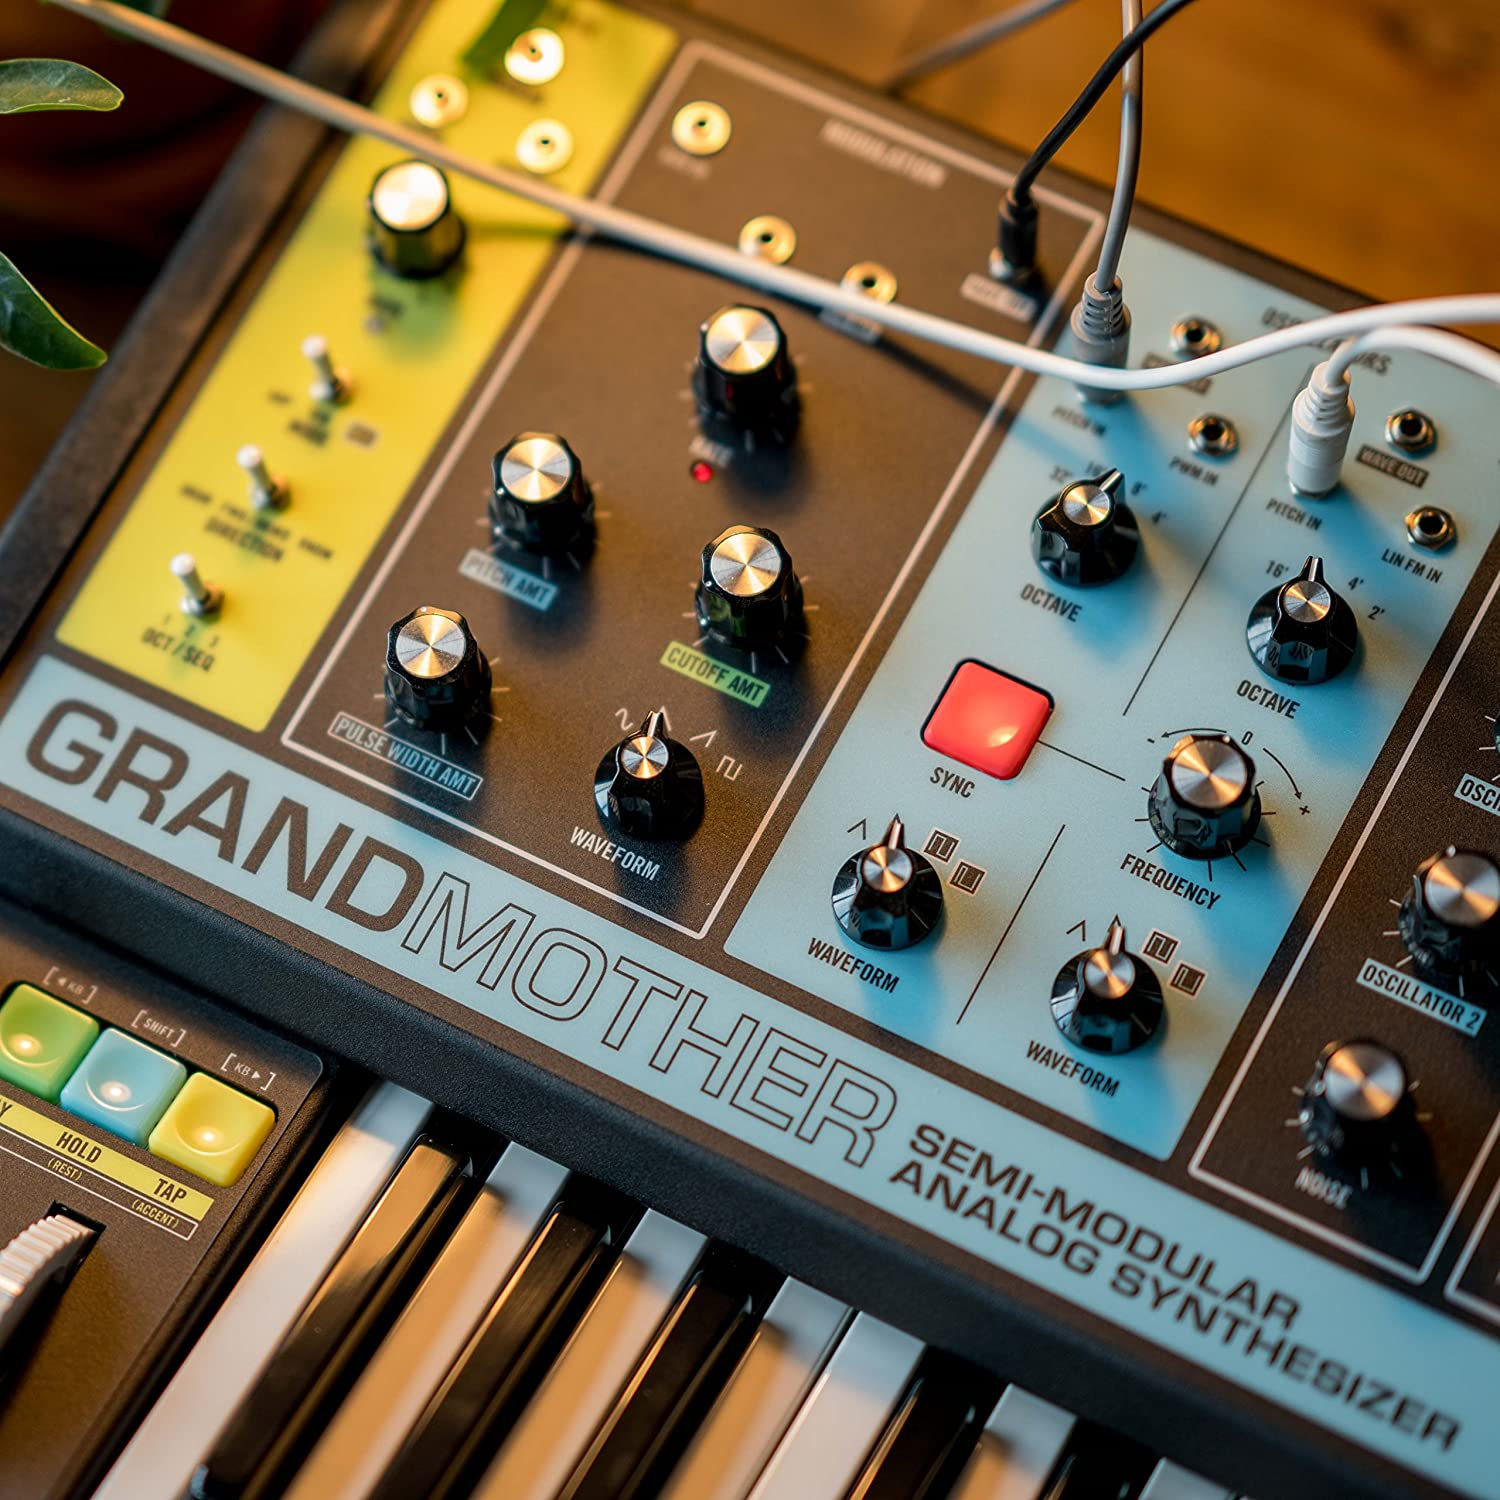 Moog Grandmother Semi Modular Analog Keyboard Frequency Synthesizer Musical Instruments